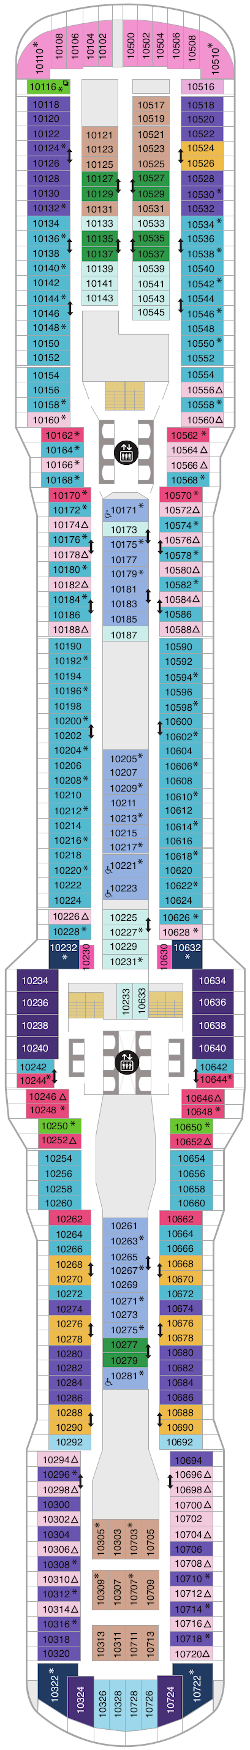 Spectrum Of The Seas Deck Ten Deck Plan